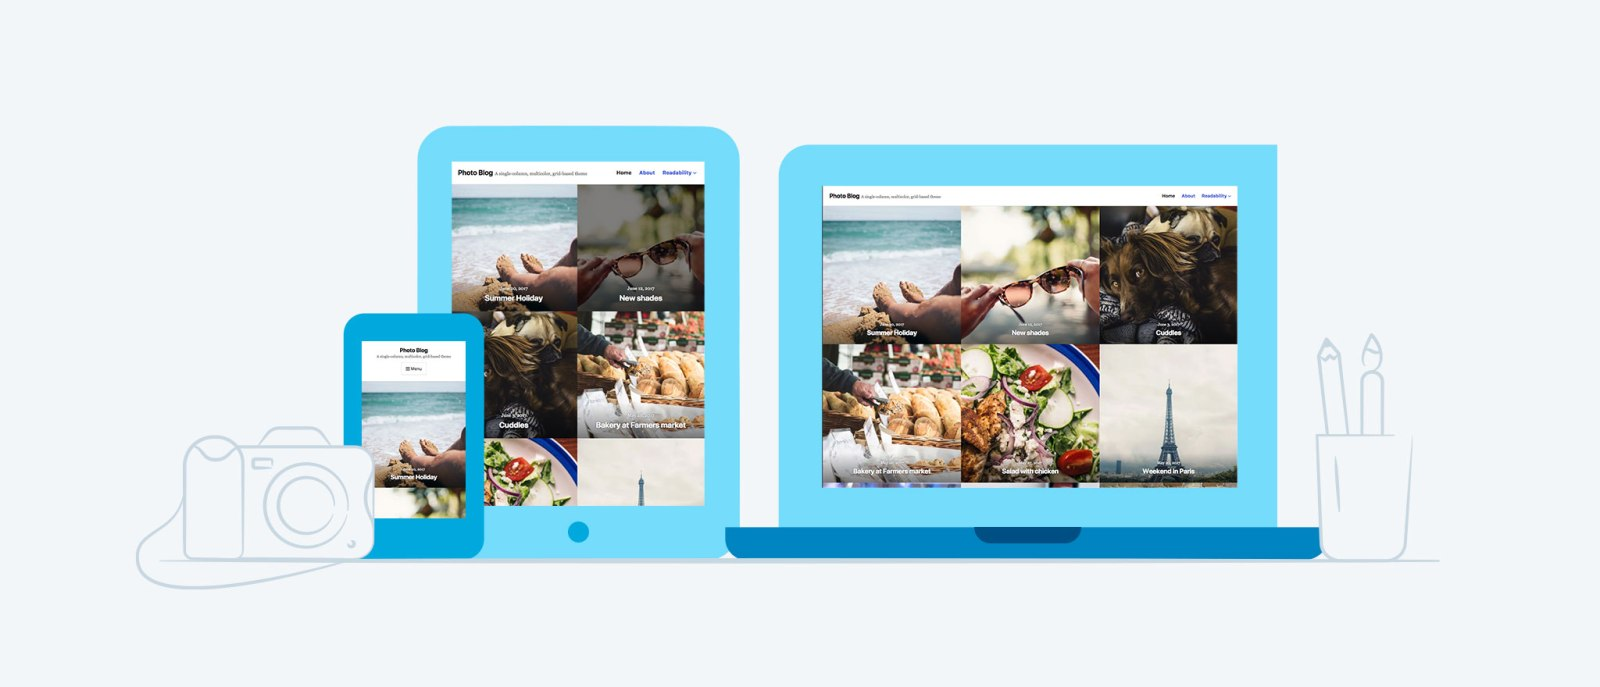 New Premium Themes: Small Business and Photo Blog 5